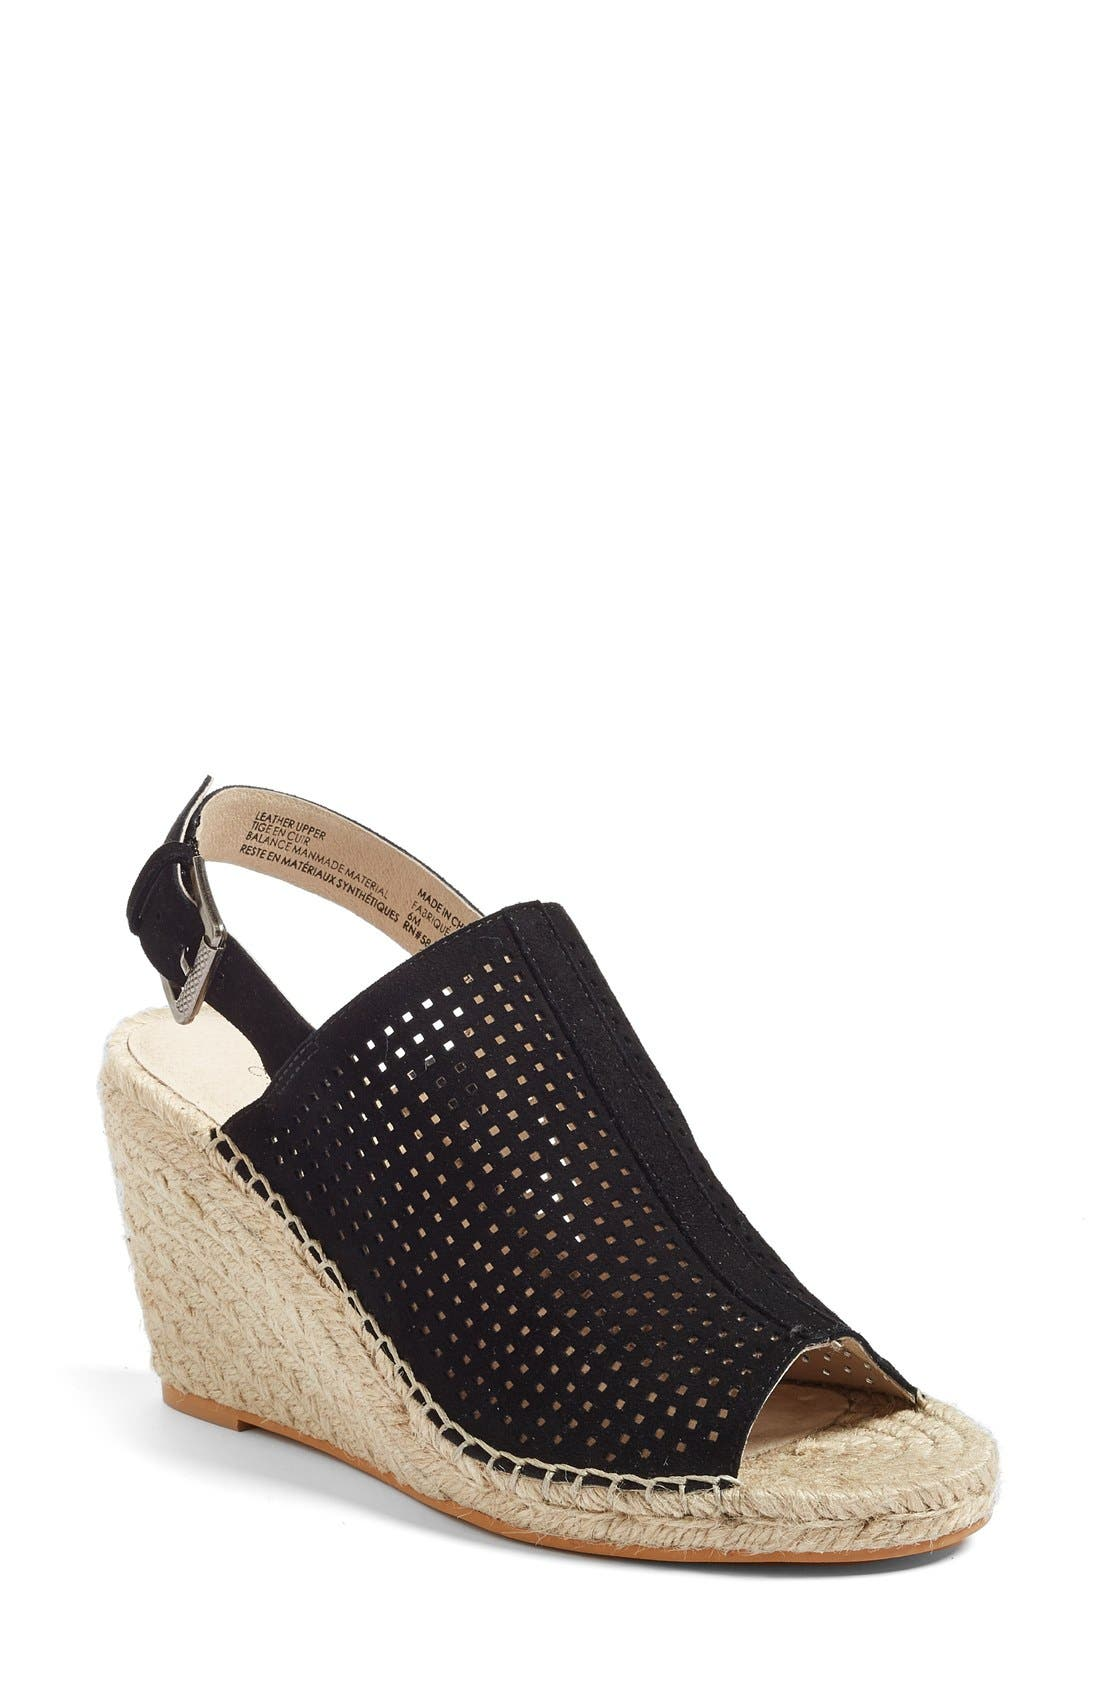 Sutton Slingback Sandal,                             Main thumbnail 1, color,                             Black Perferated Kidsuede